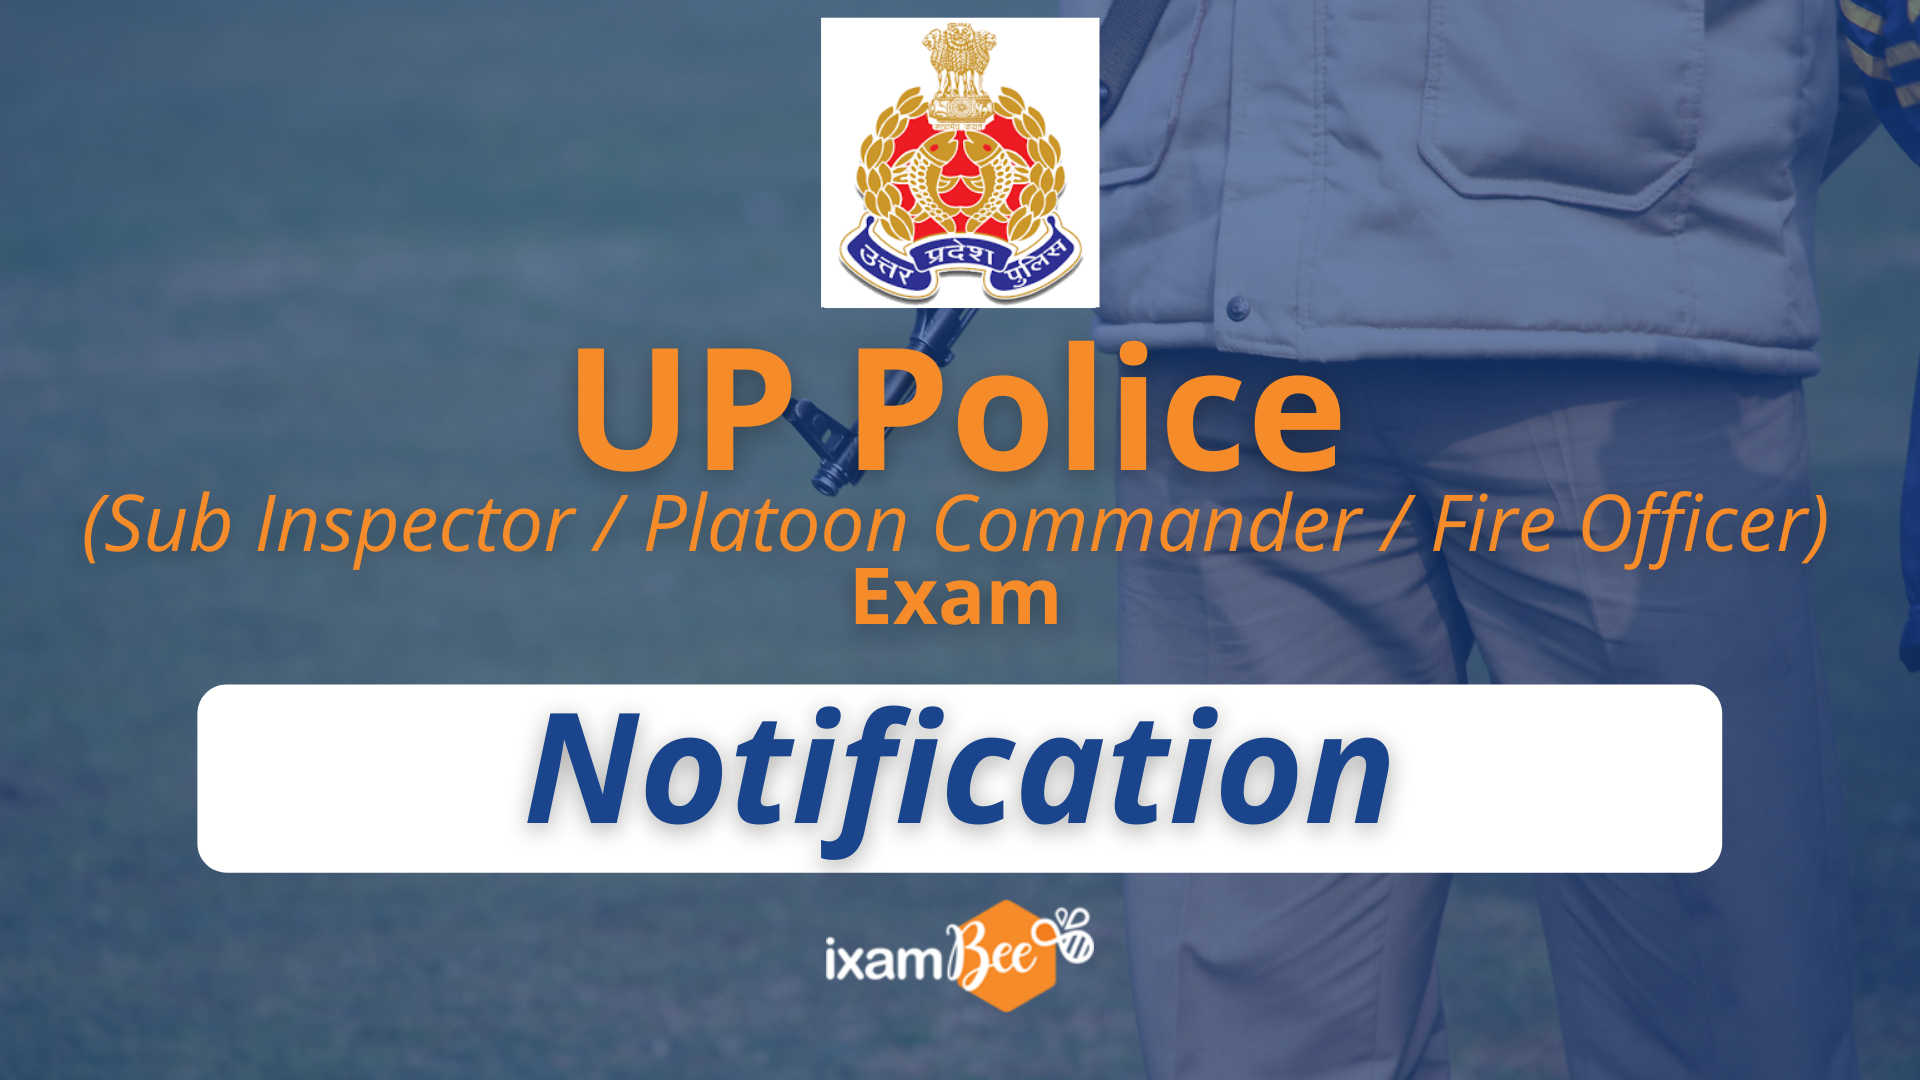 UP Police (Sub Inspector, Platoon Commander, and Fire Officer) Exam Notification